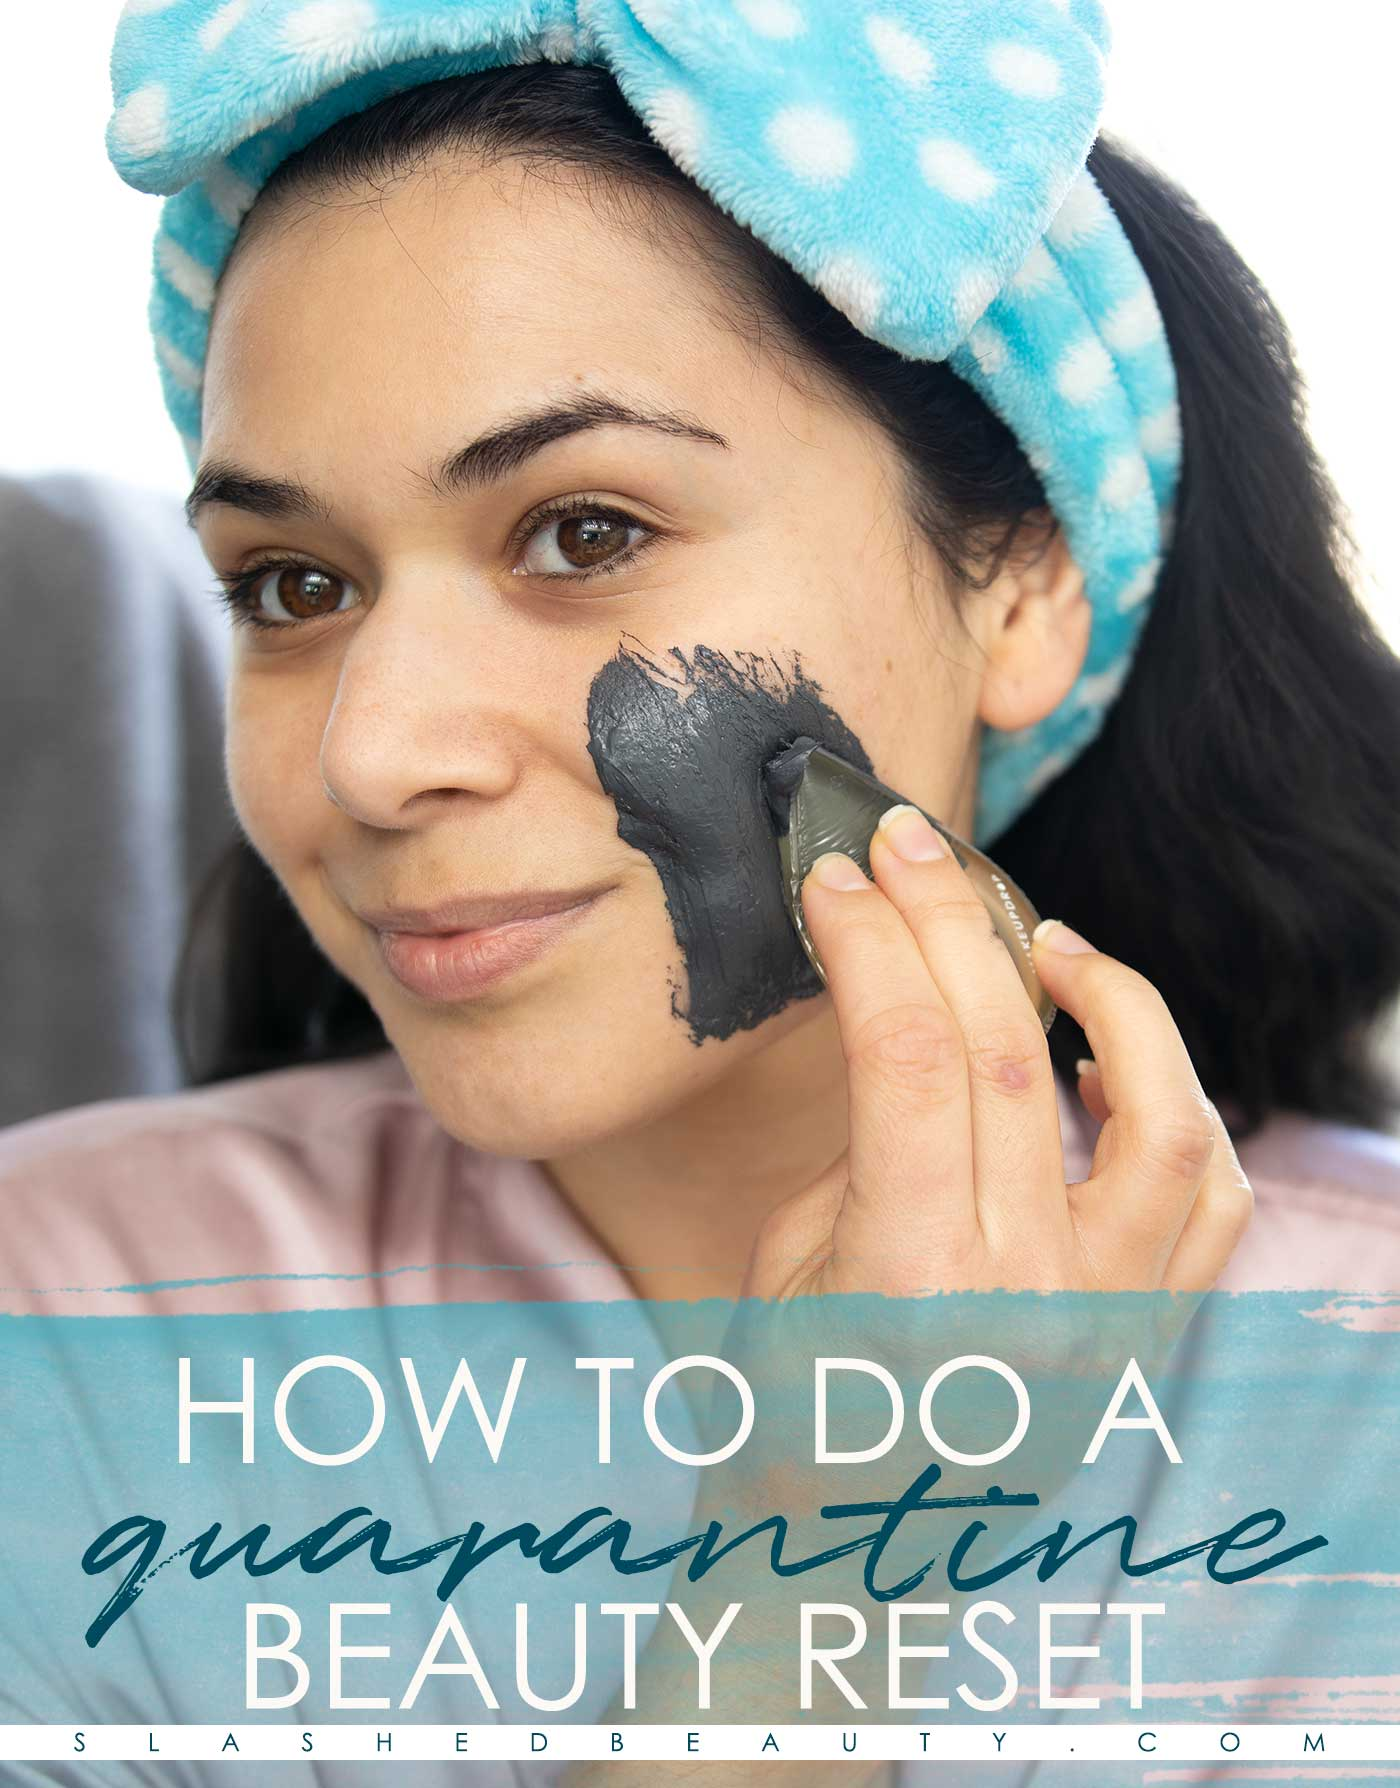 Quarantine Beauty Routine: Get Better Hair, Skin and Nails at Home | Slashed Beauty